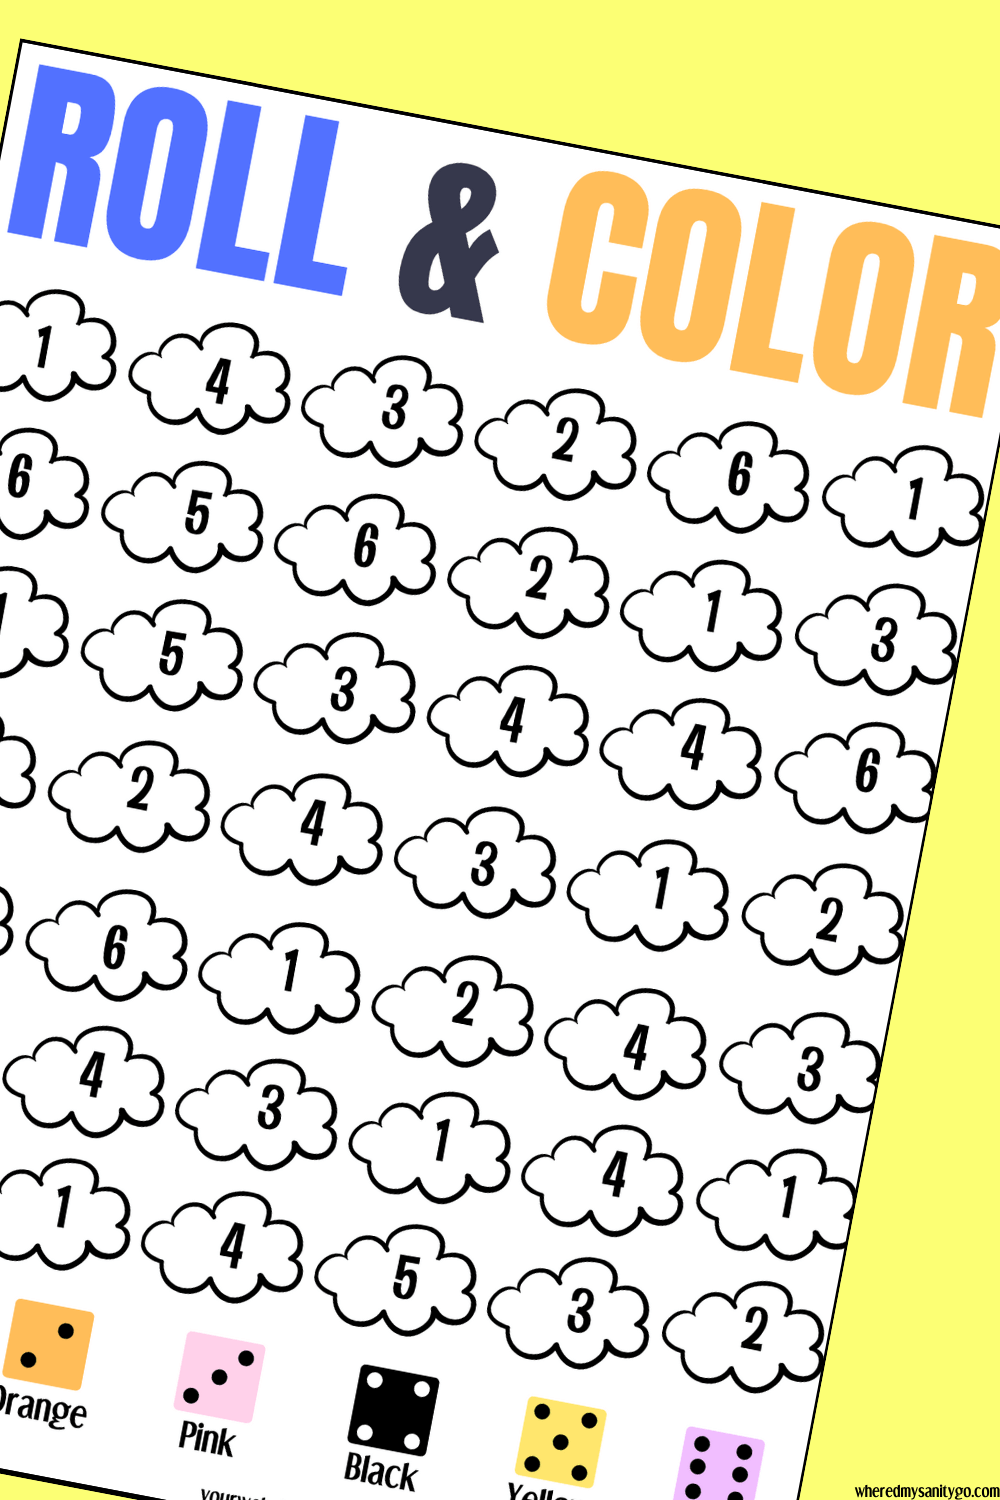 Roll the Dice & Color the Number Game